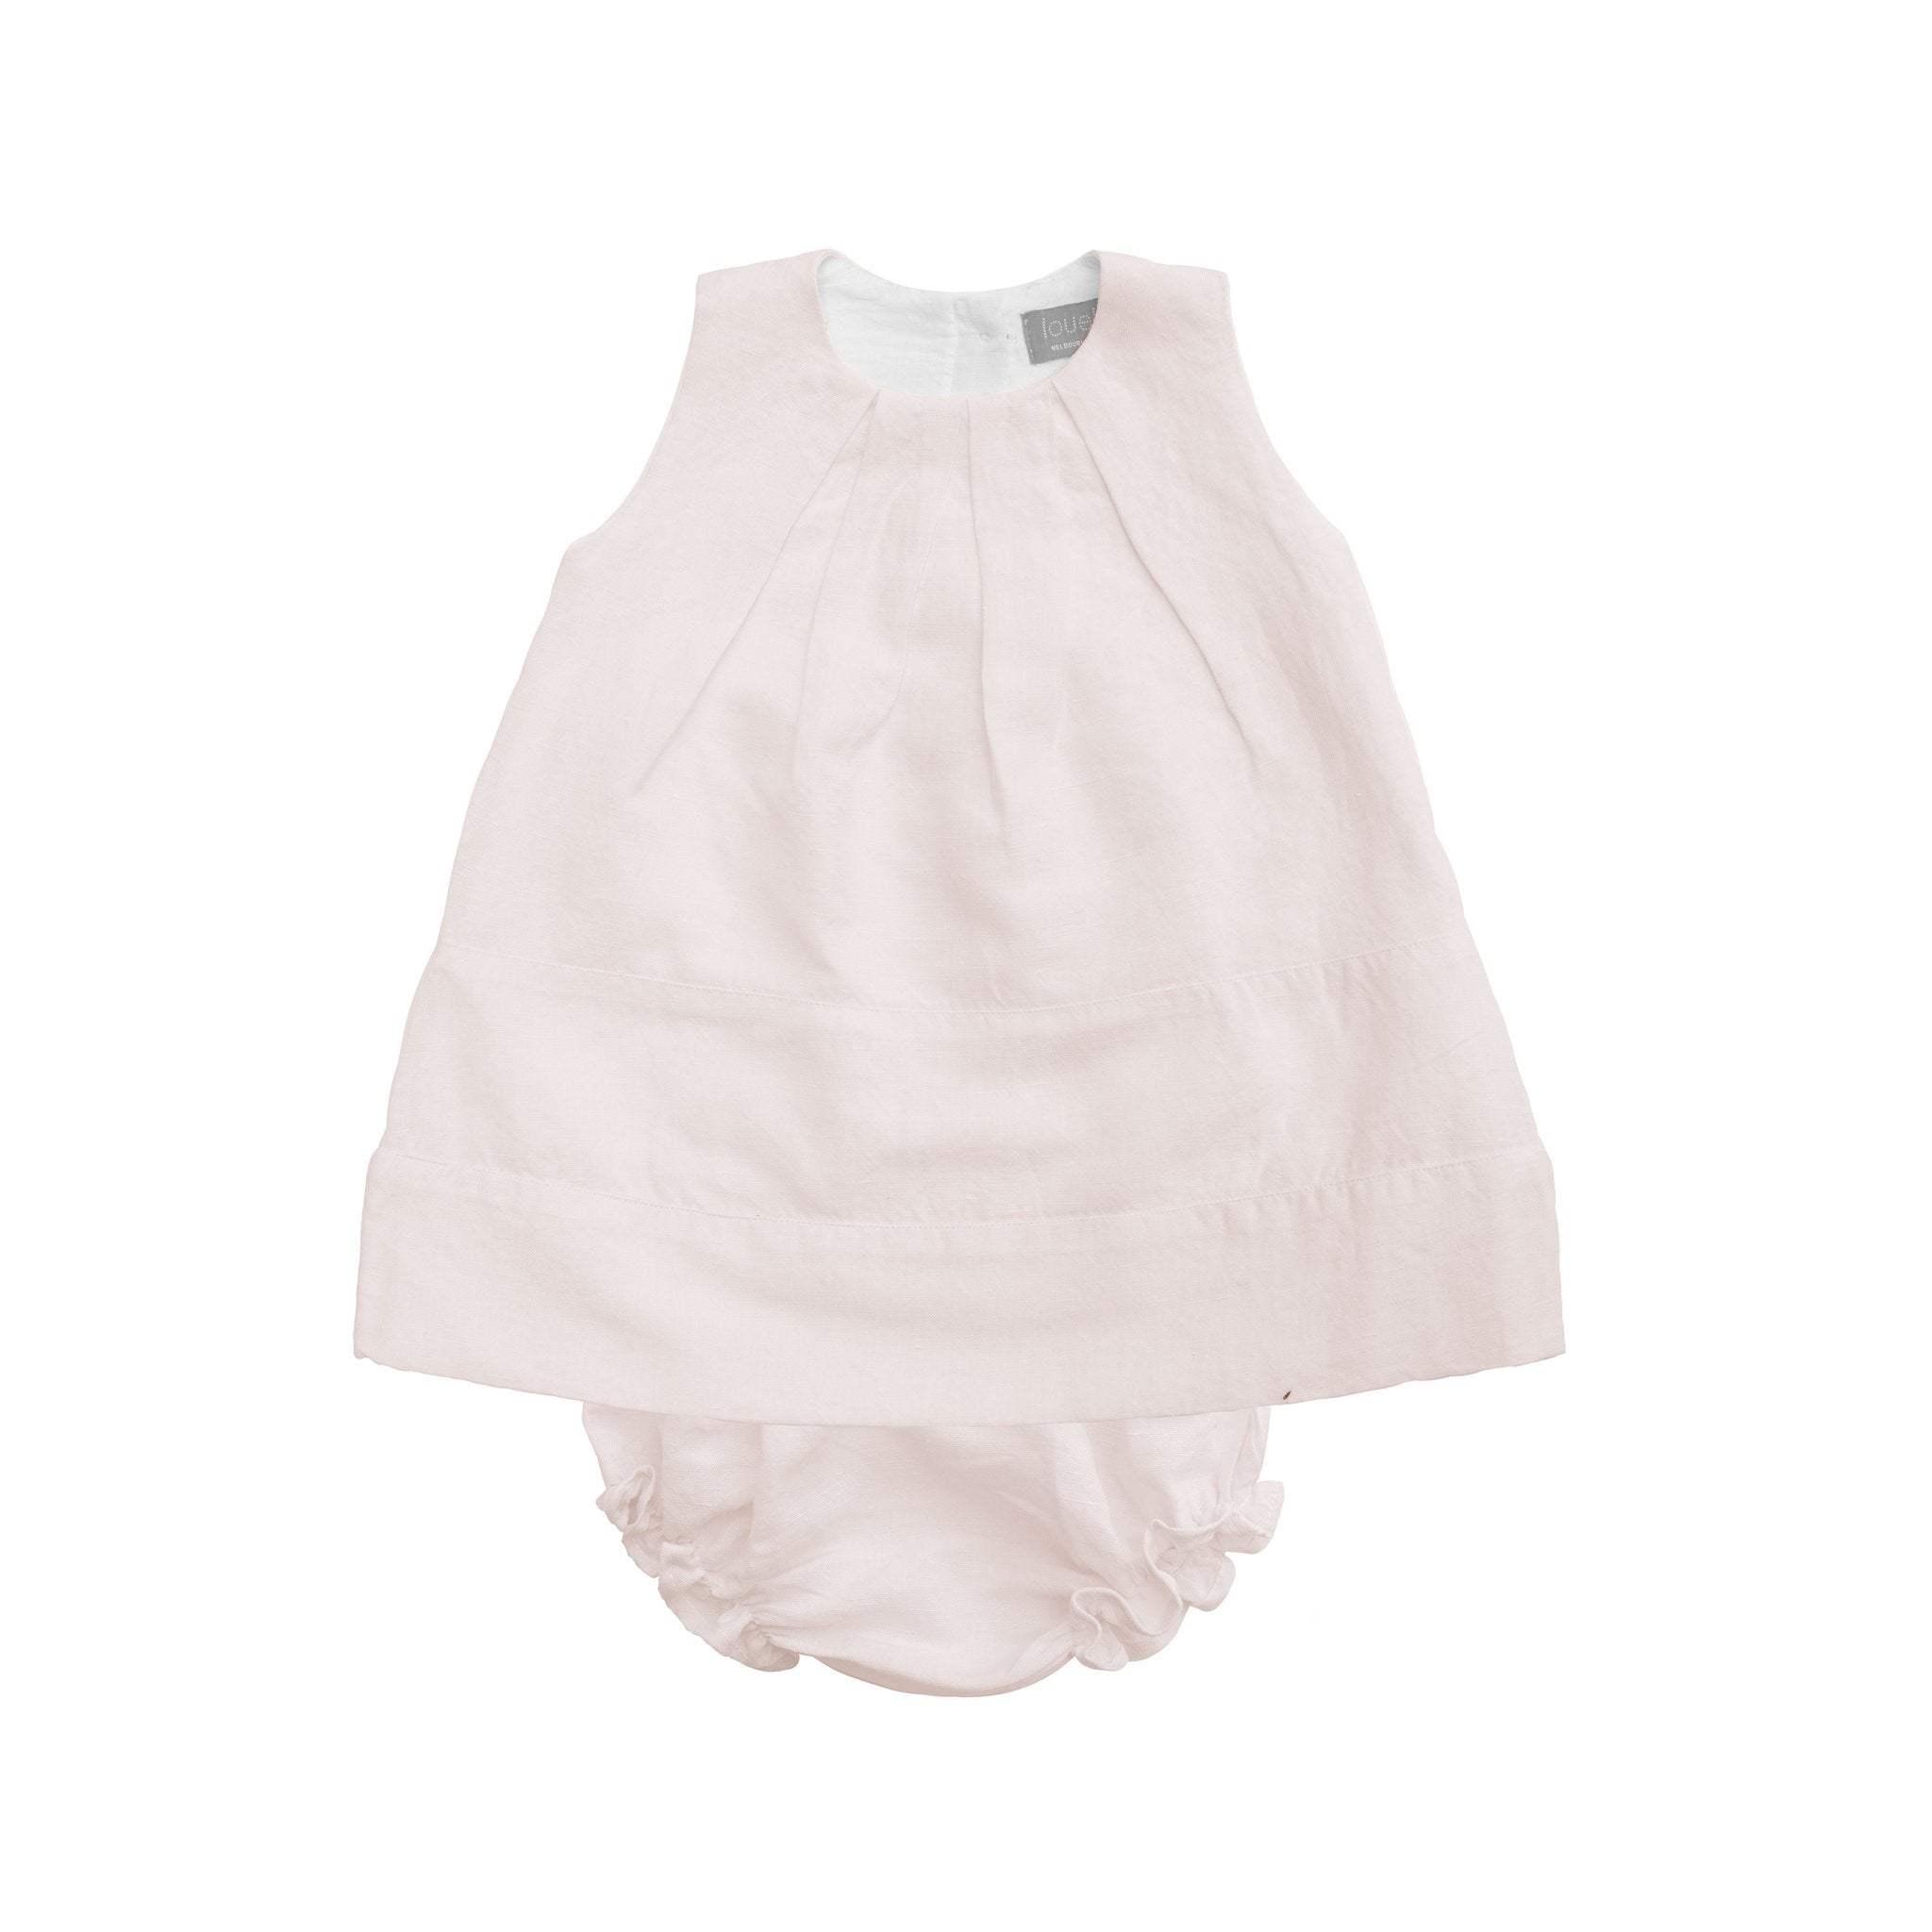 Louelle Linen Panel Dress & Bloomer Set